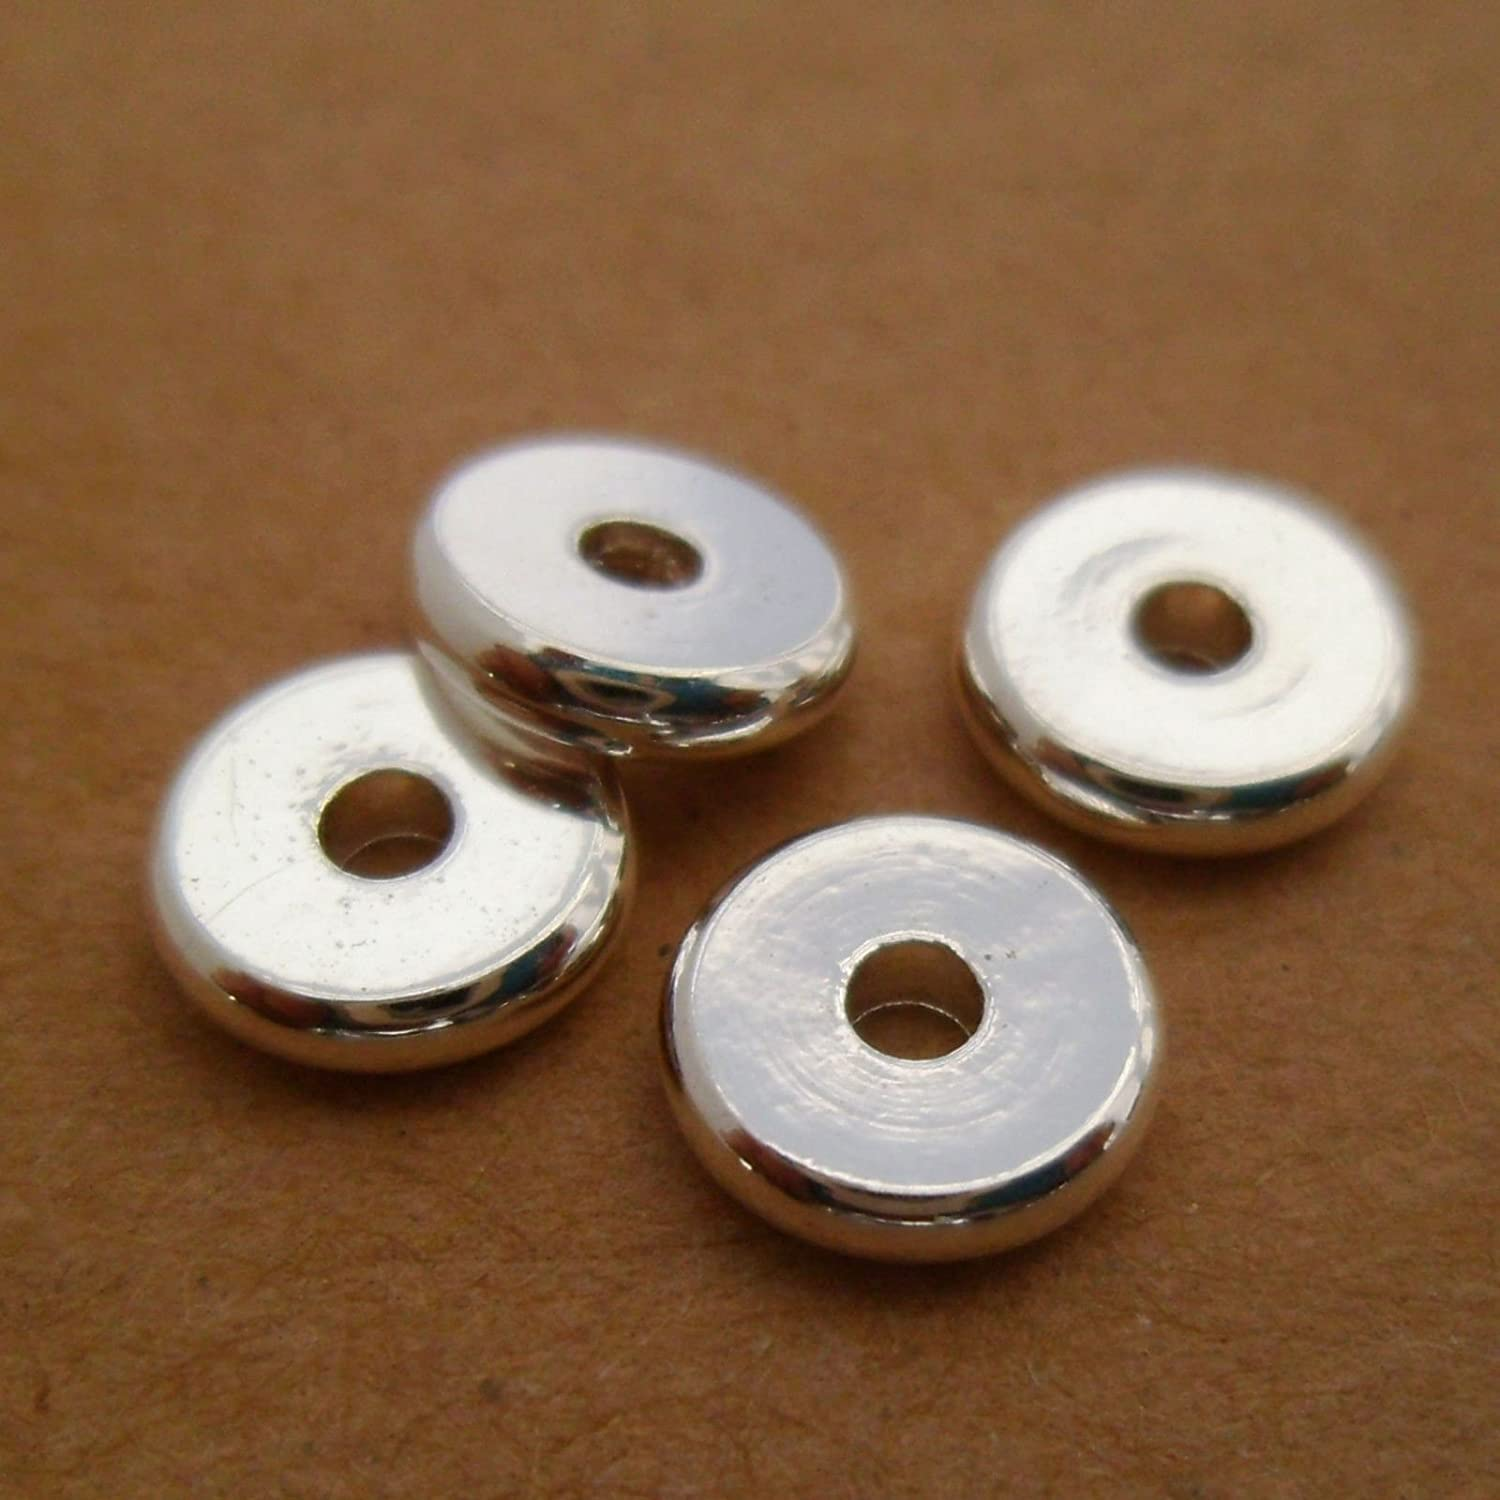 jennysun2010 6mm Solid Metal Flat Disc Round Rondelle Slice Bracelet Necklace Connector Spacer Charm Beads Silver 100 Pcs per Bag for Earrings Jewelry Making Crafts Design